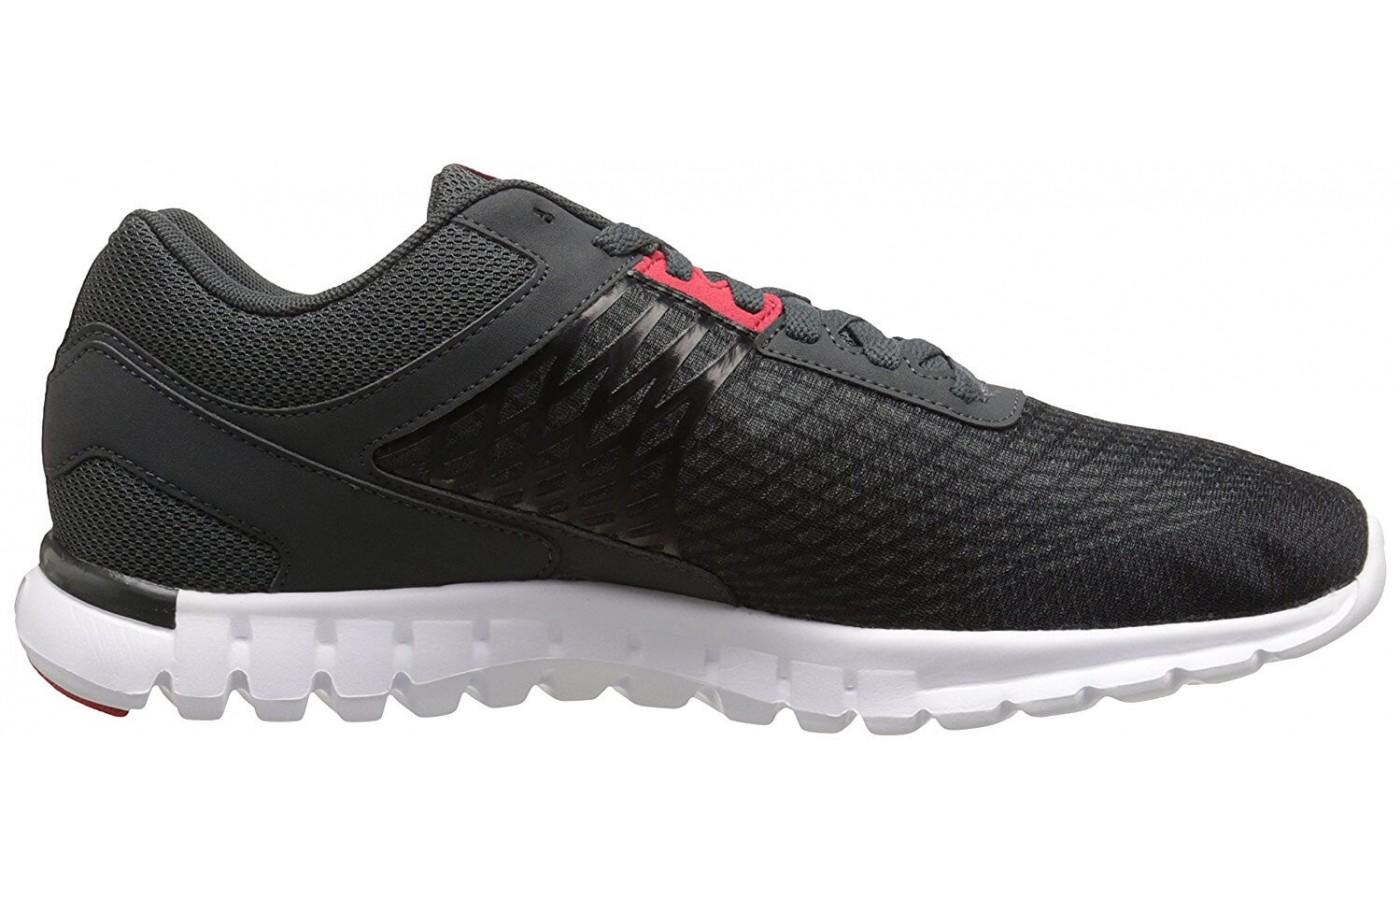 The upper is made of breathable mesh and the midsole is constructed using Sublite foam for added comfort